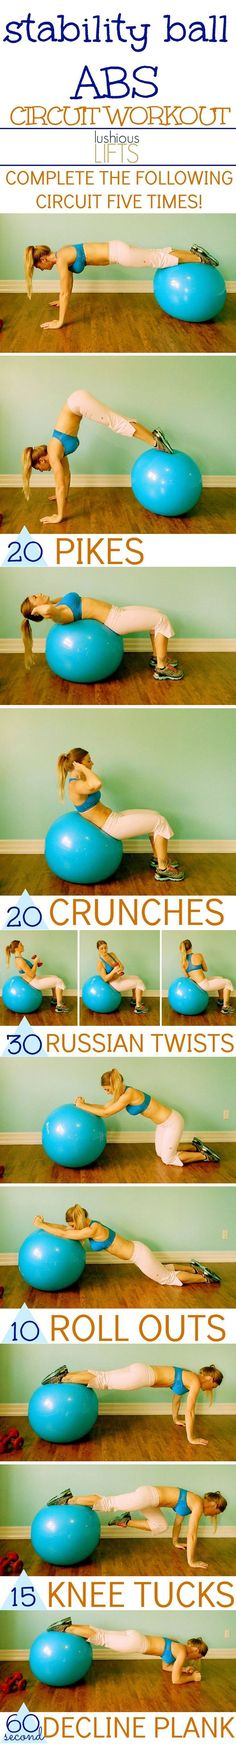 Whether it's six-pack abs, gain muscle or weight loss, these workout plan is great for beginners . No gym or equipment needed!